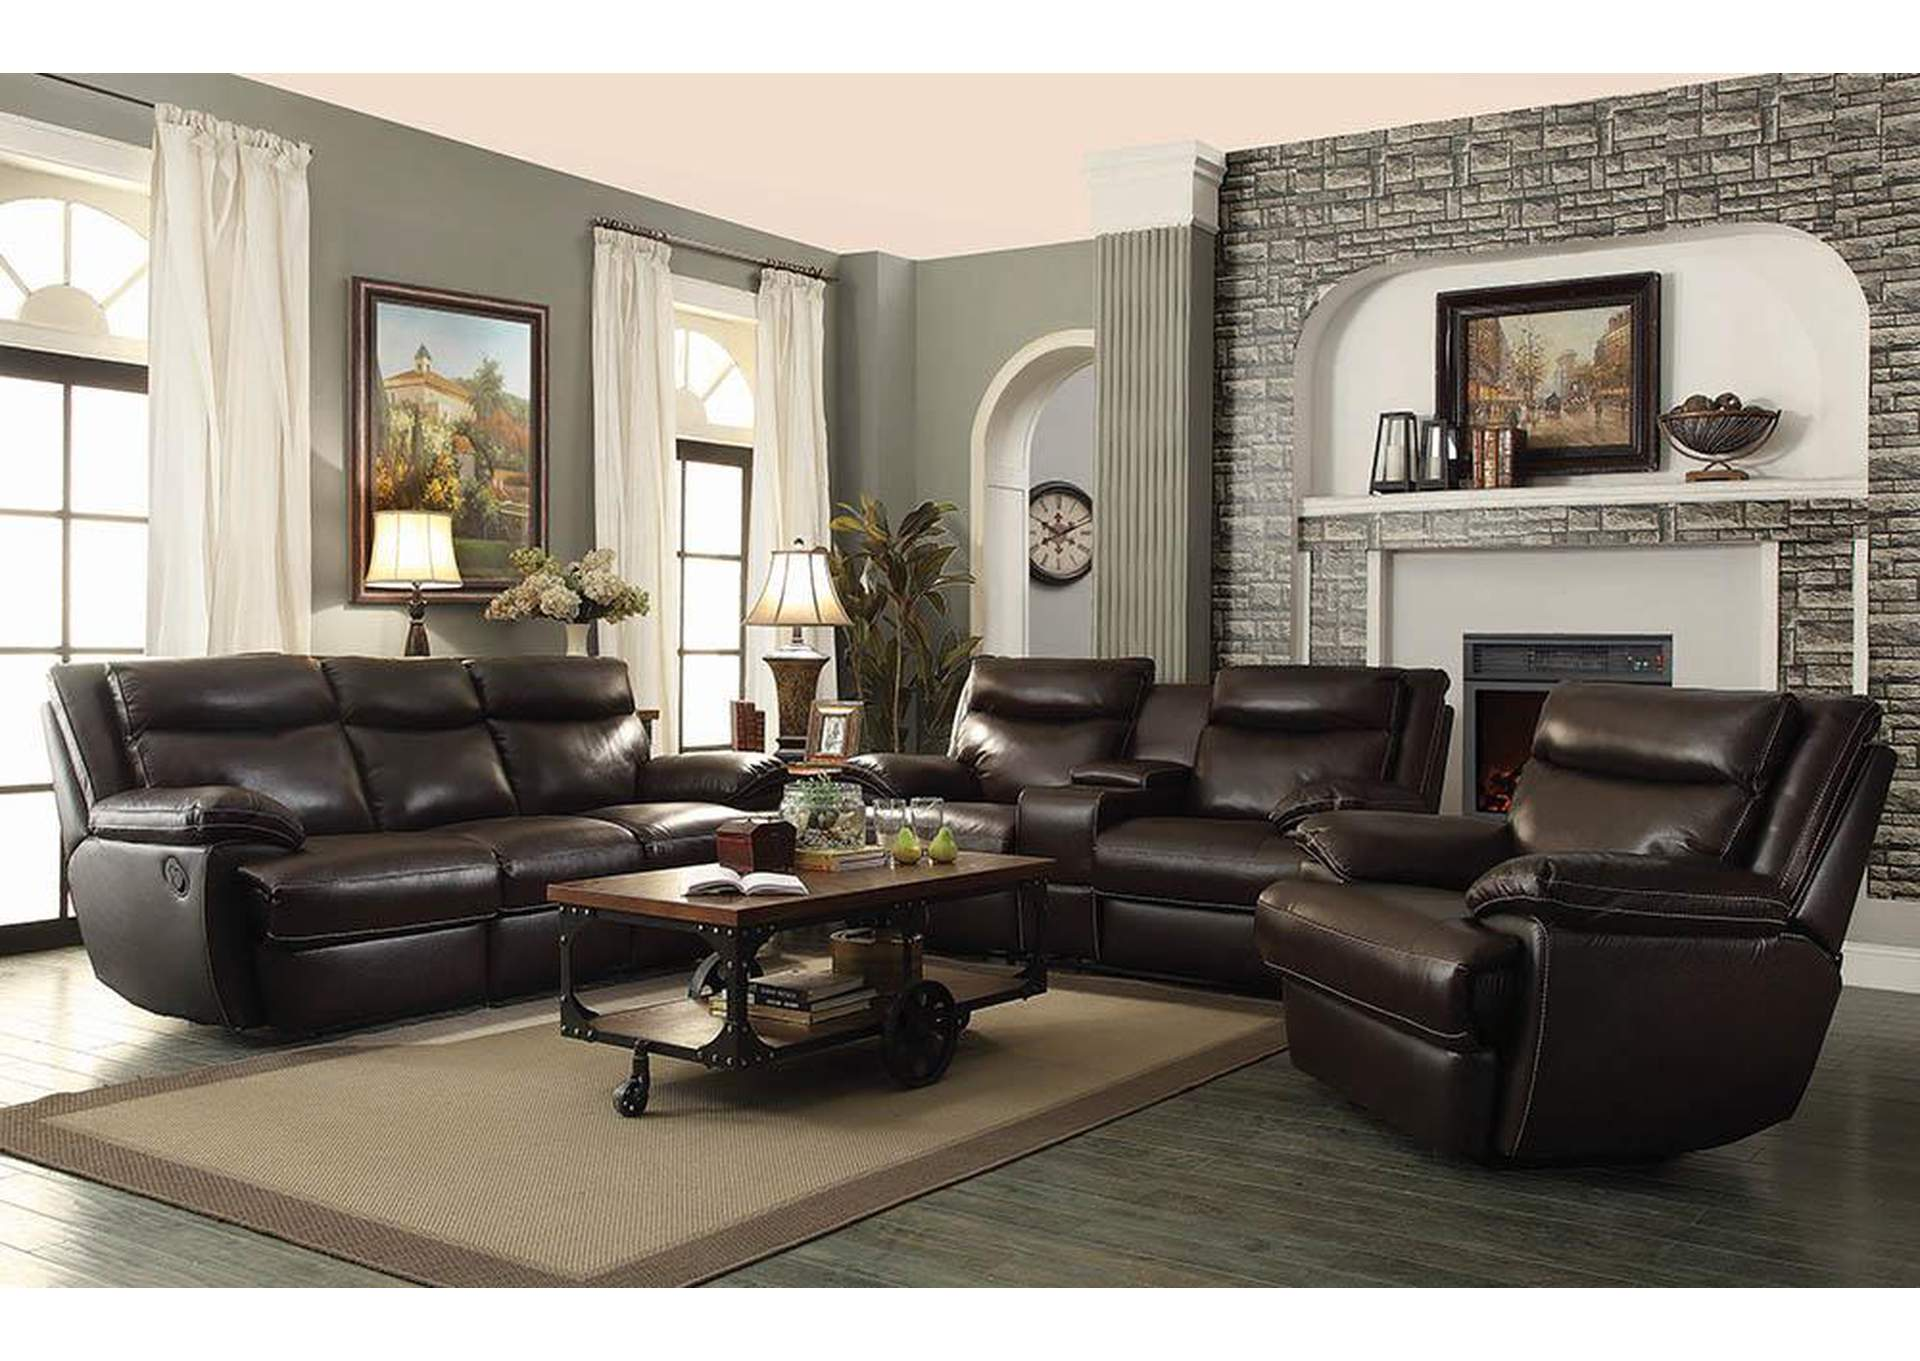 Best Home Furniture Outlet Vineland Nj Brown Reclining Loveseat